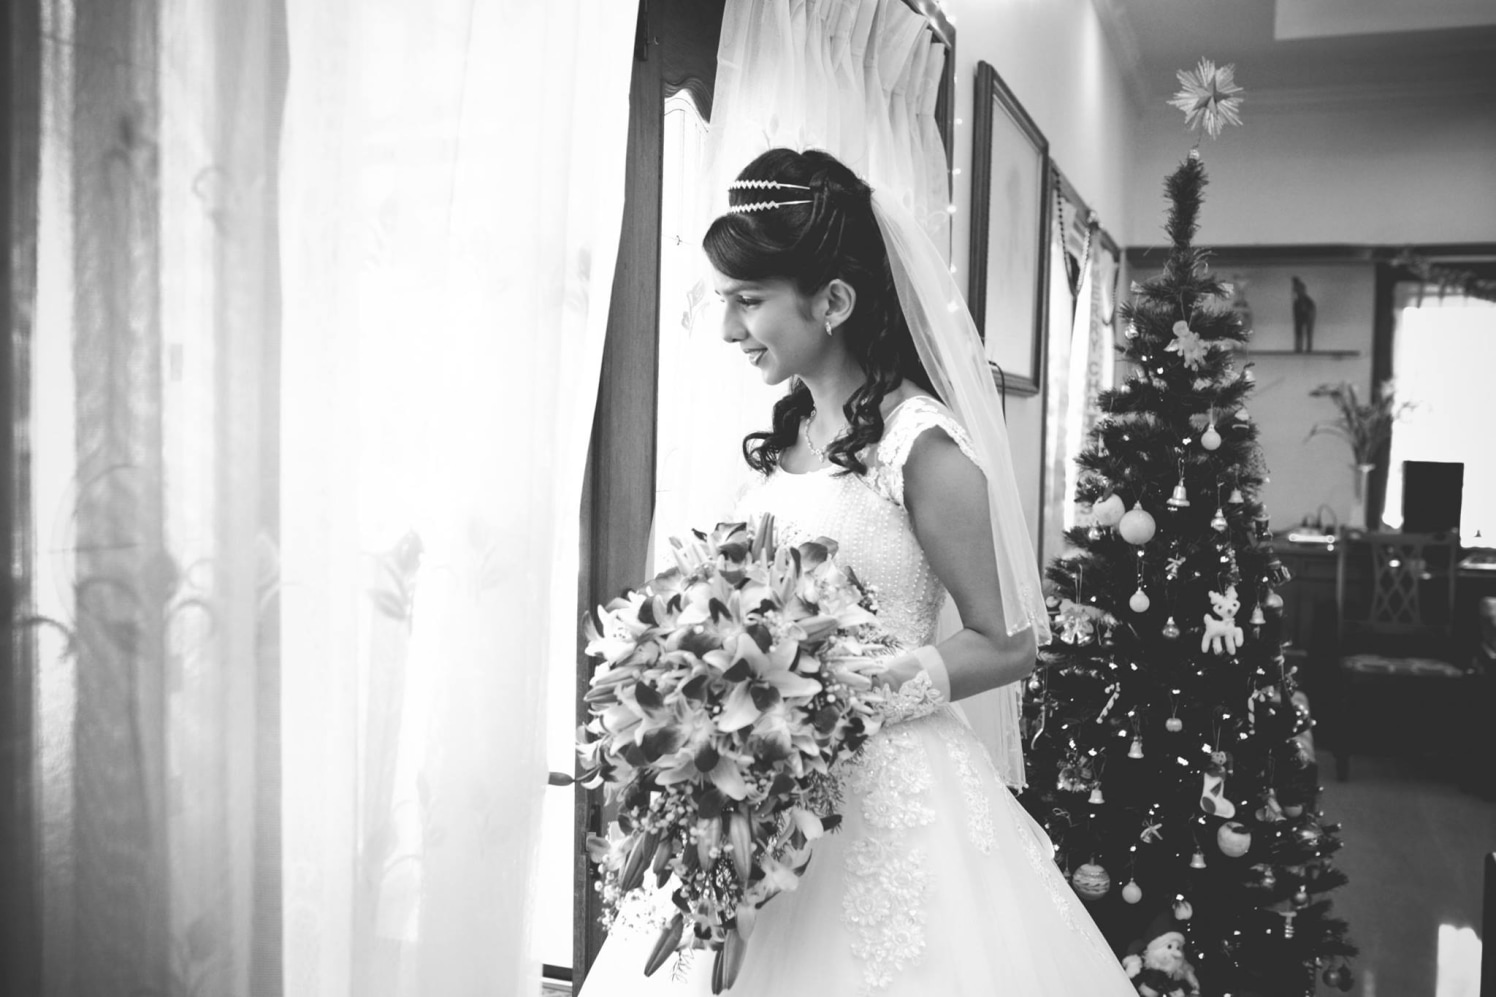 Black And White Zappy Glimpse Of Conventional Christian Bride by Terence Savio Pimenta Wedding-photography | Weddings Photos & Ideas